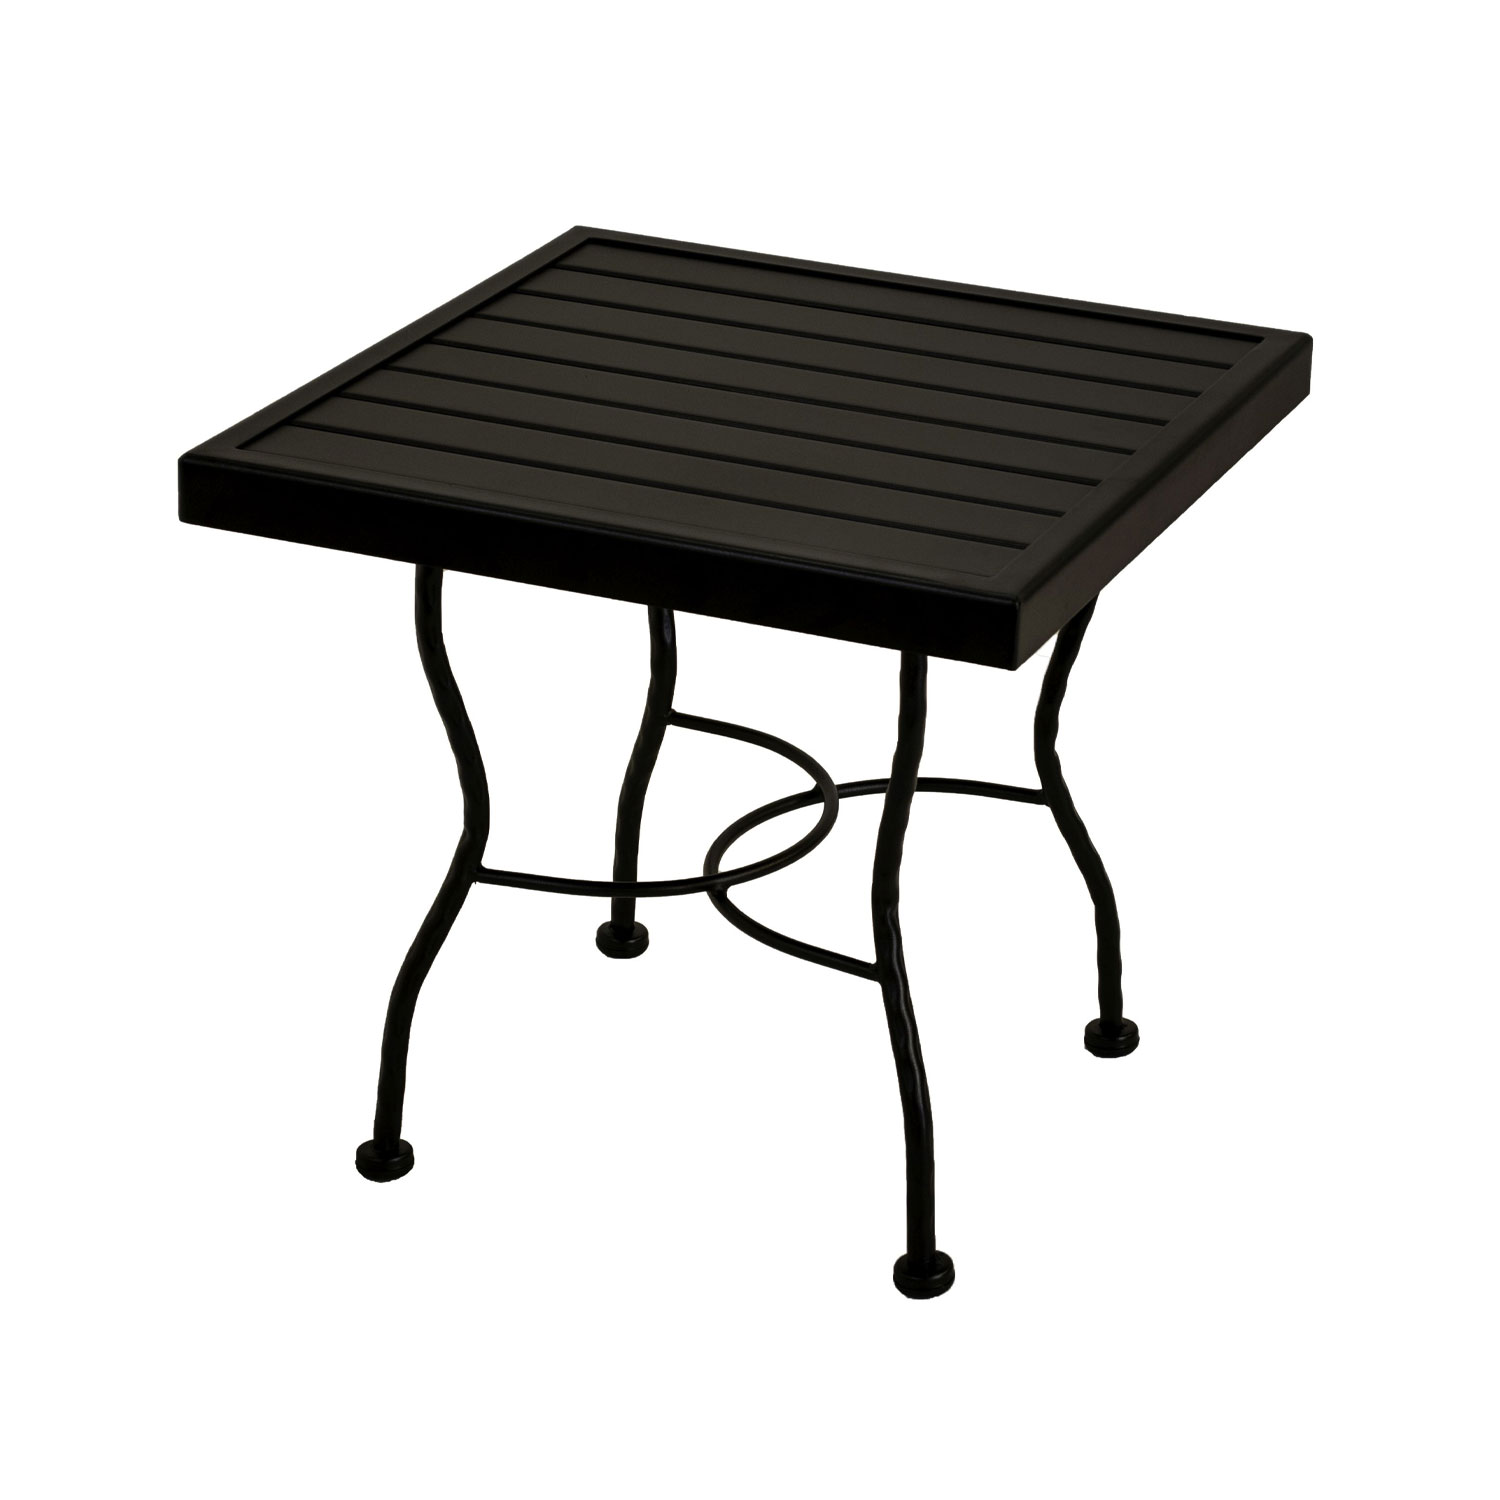 meadowcraft powder coated wrought iron